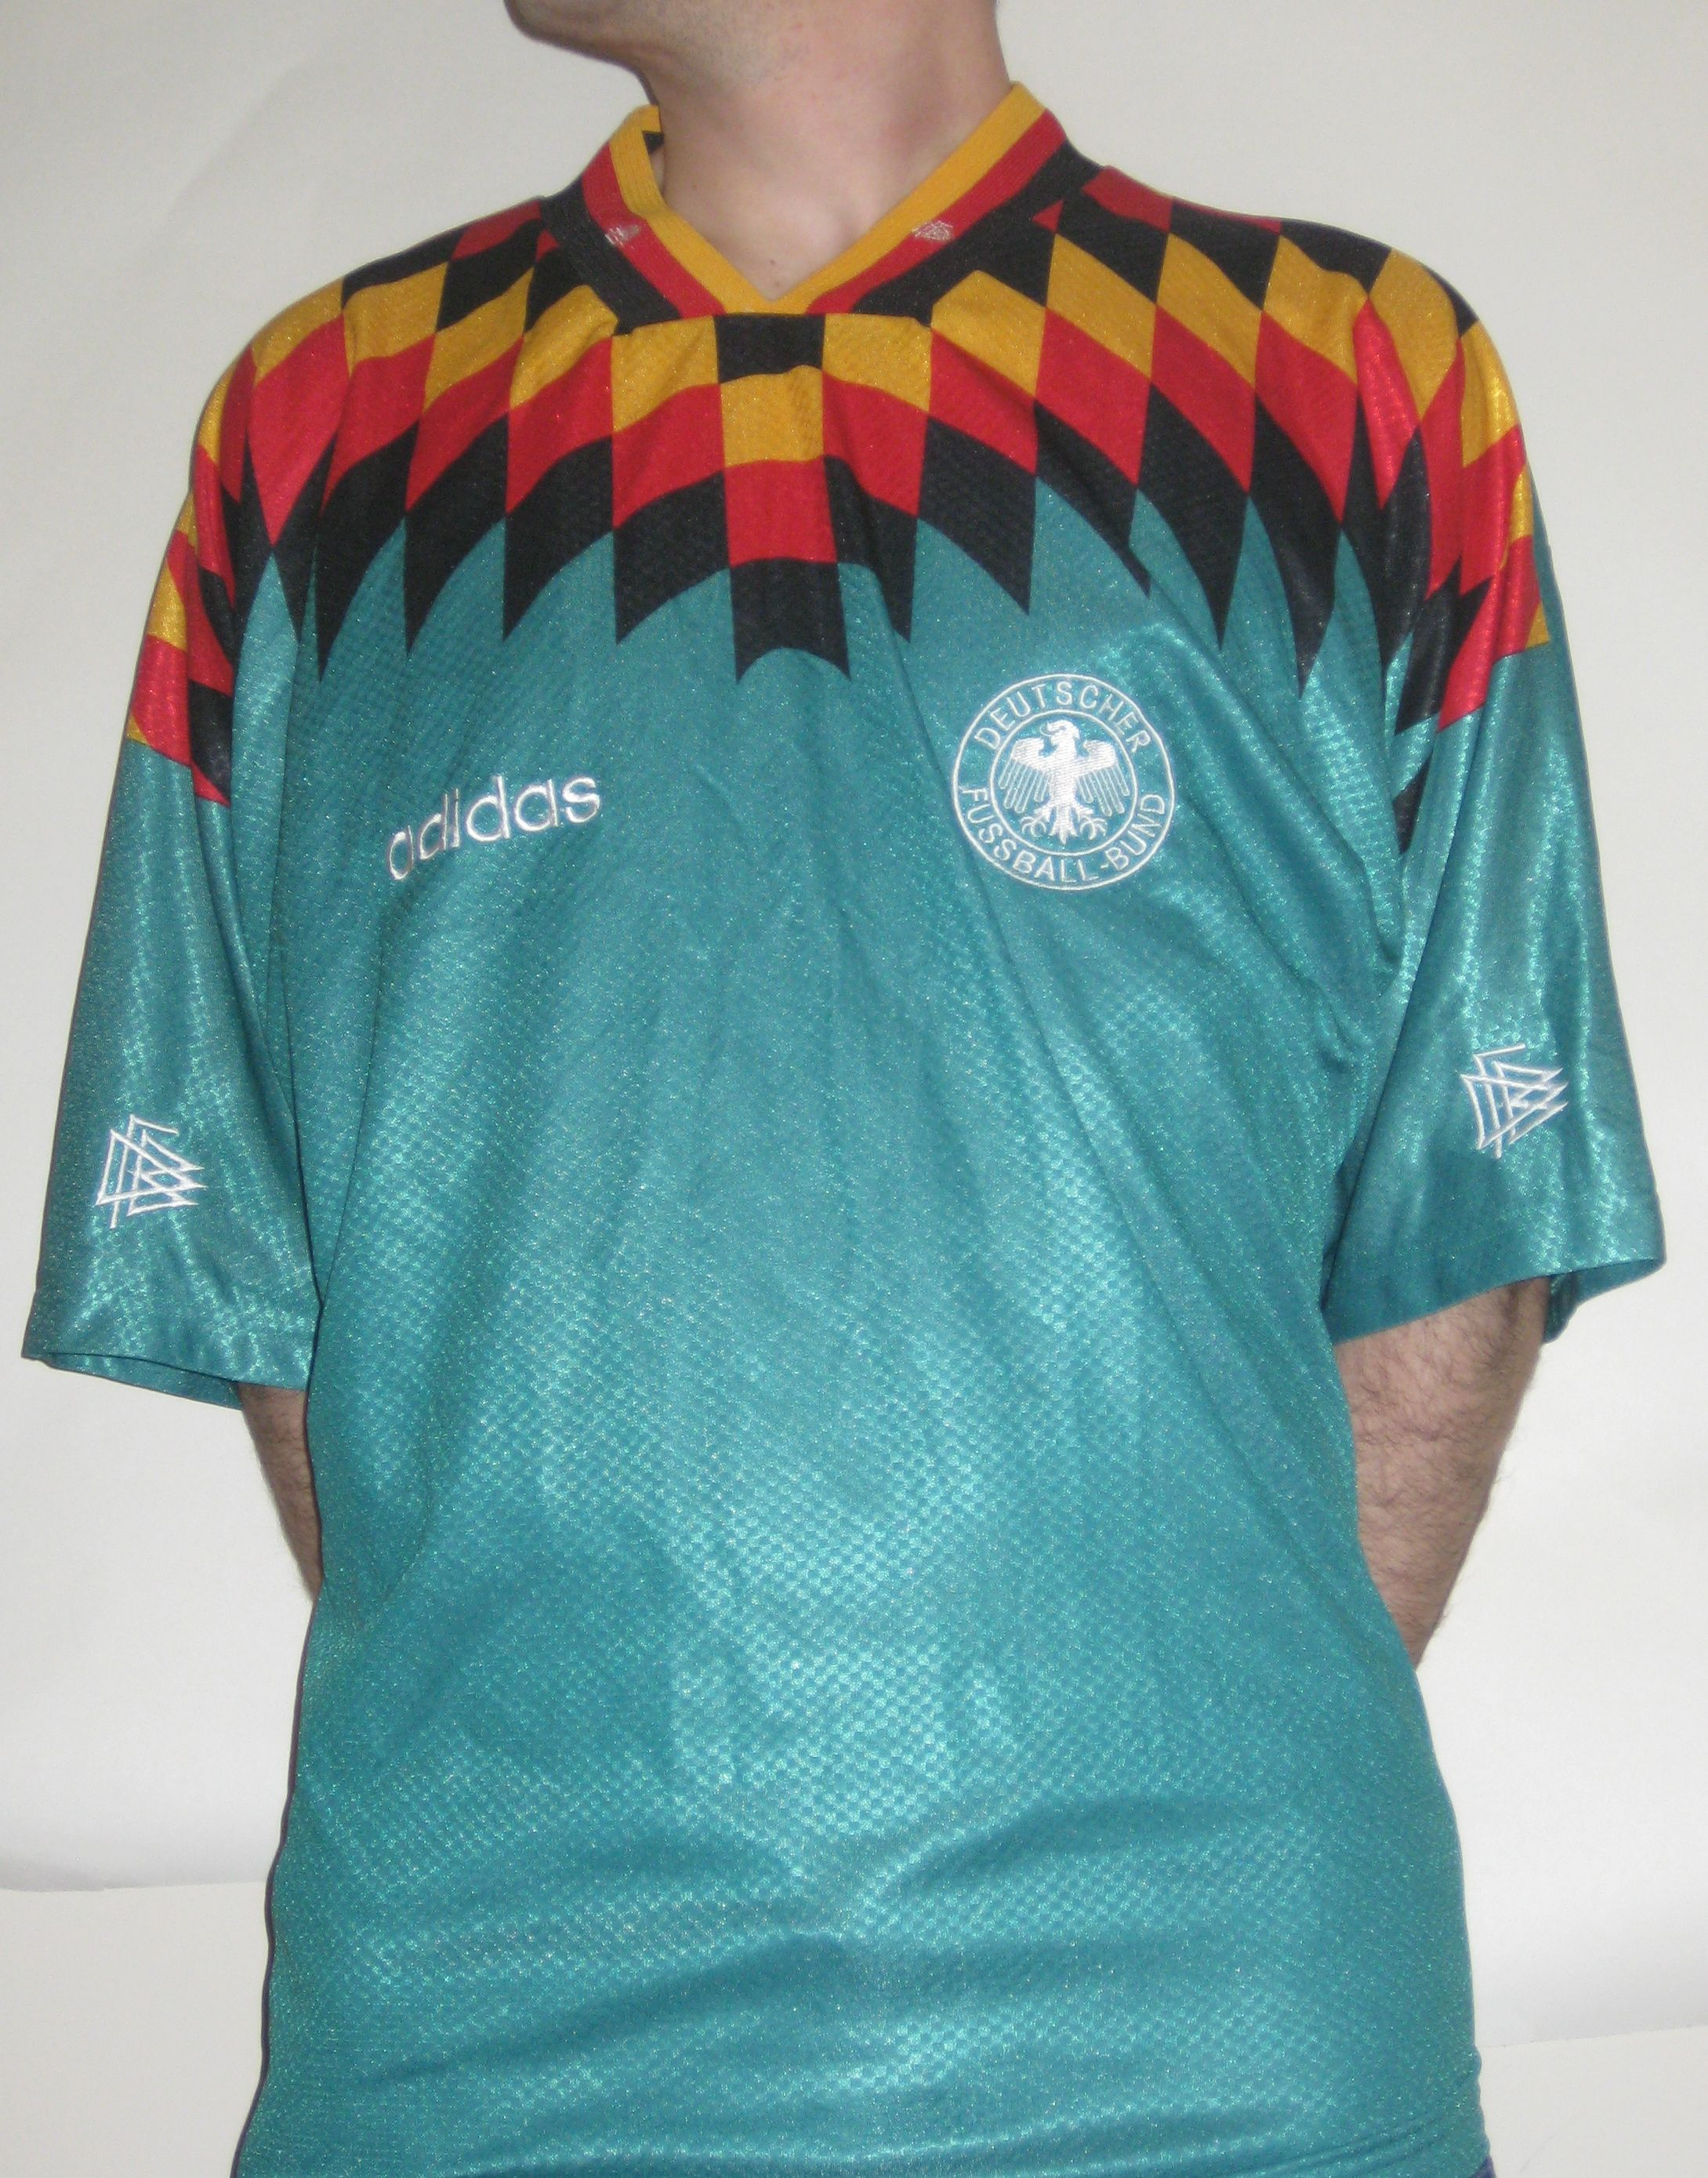 41116a9ca Germany Away - 1994. Germany wore this jersey during USA  94 World ...